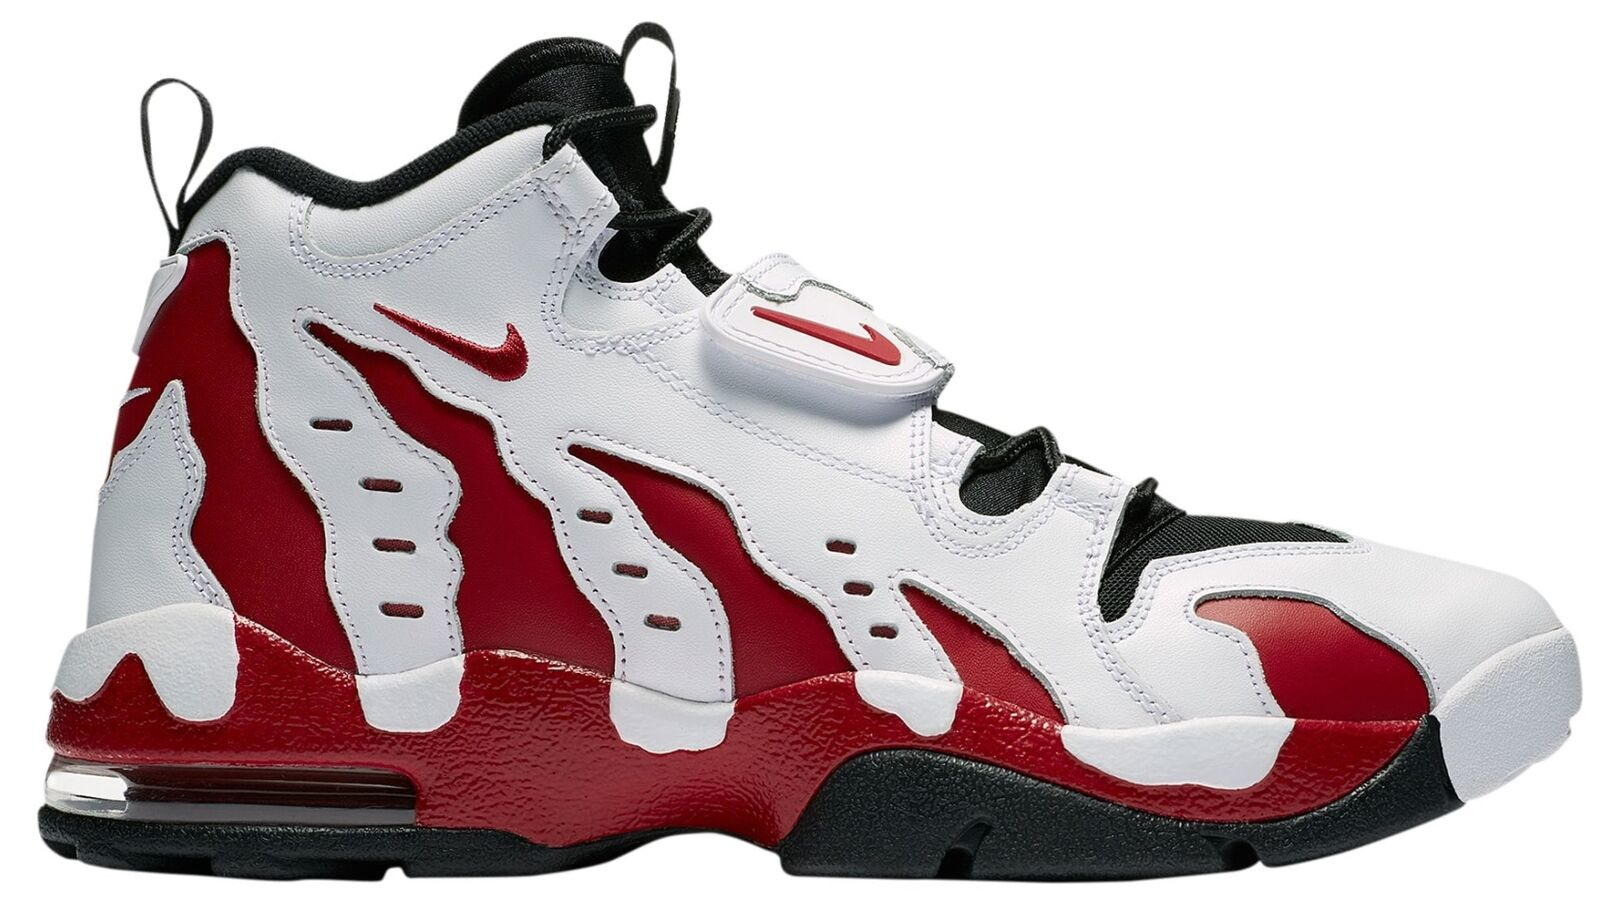 Nike Air DT Max '96 Falcons Mens 316408-161 White Red Black Deion shoes Size 8